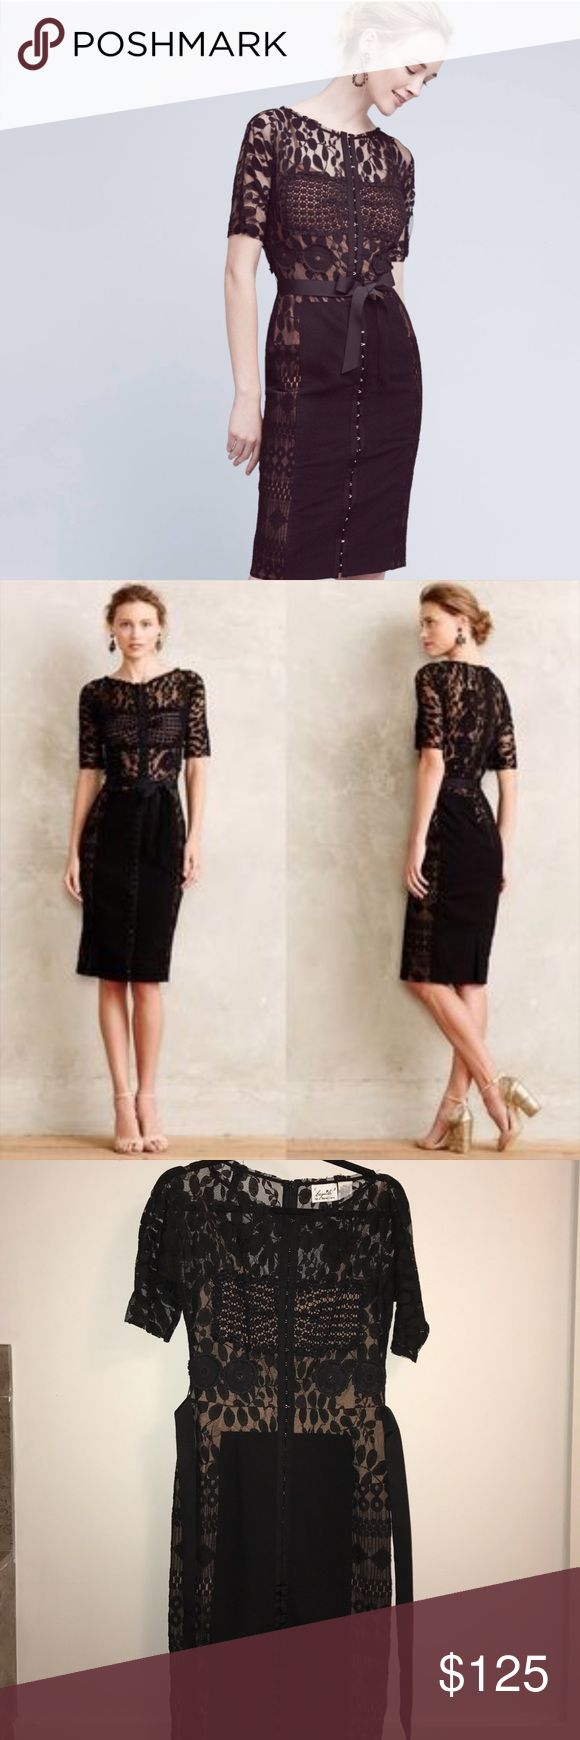 Byron Lars Black Lace Carissima Sheath Dress Sz 4 Anthropologie Byron Lars Carissima Sheath Dress. The perfect dress for a wedding or a funeral. Black lace top with body con sheath bottom. Nude shell underlay. Never been worn. Like new condition. Gorgeous ribbon that ties around waste and accentuates your curves. Anthropologie Dresses Midi